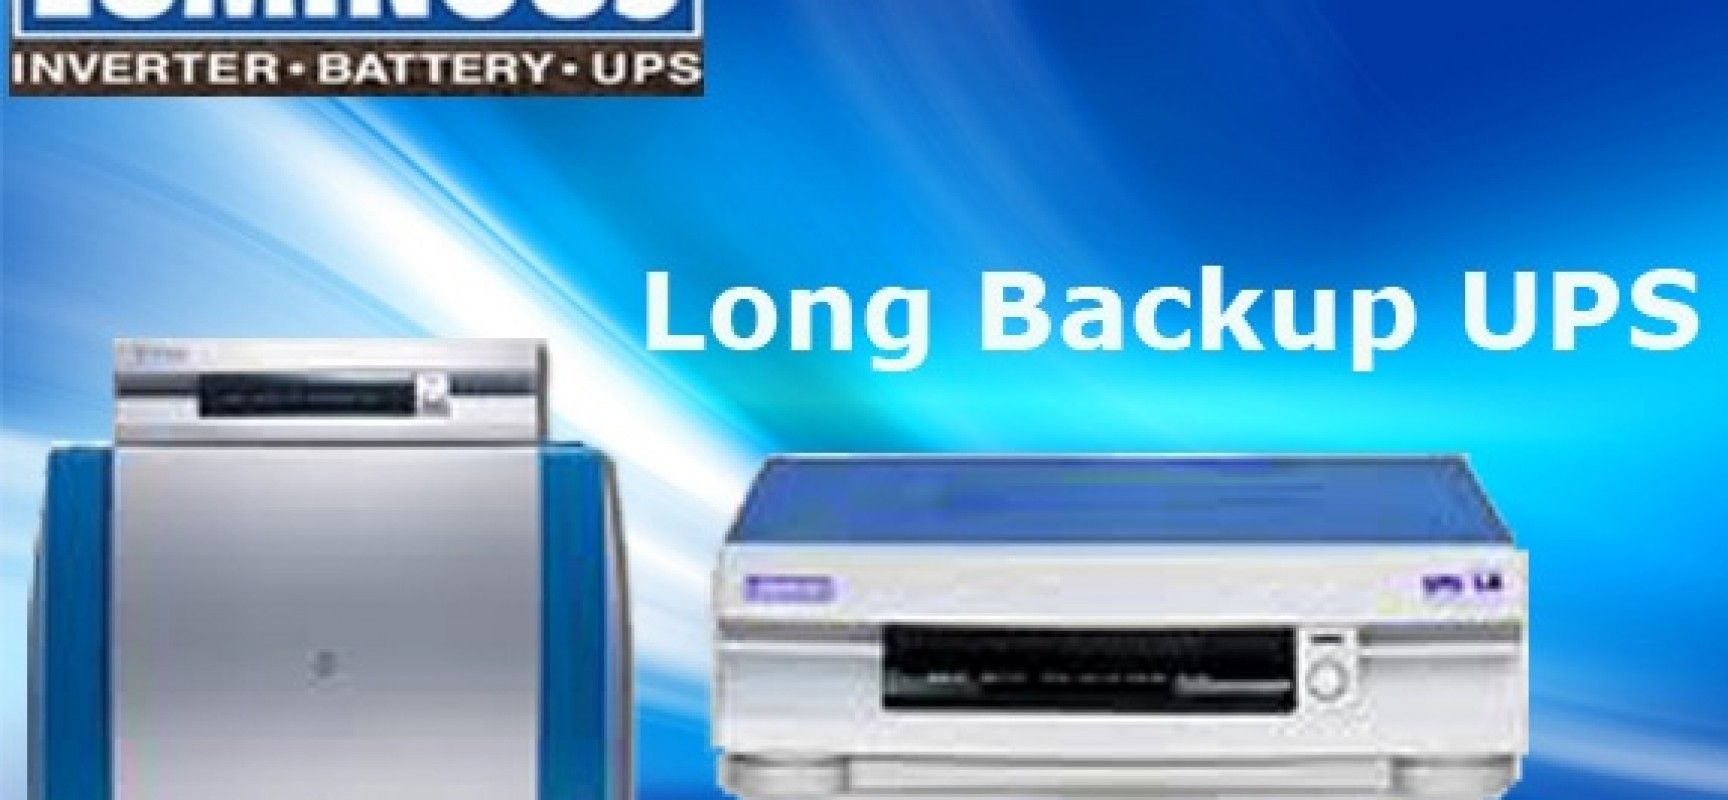 Top 5 Inverter Brands In India Web Gyaan Power Backup Fun Facts Brand